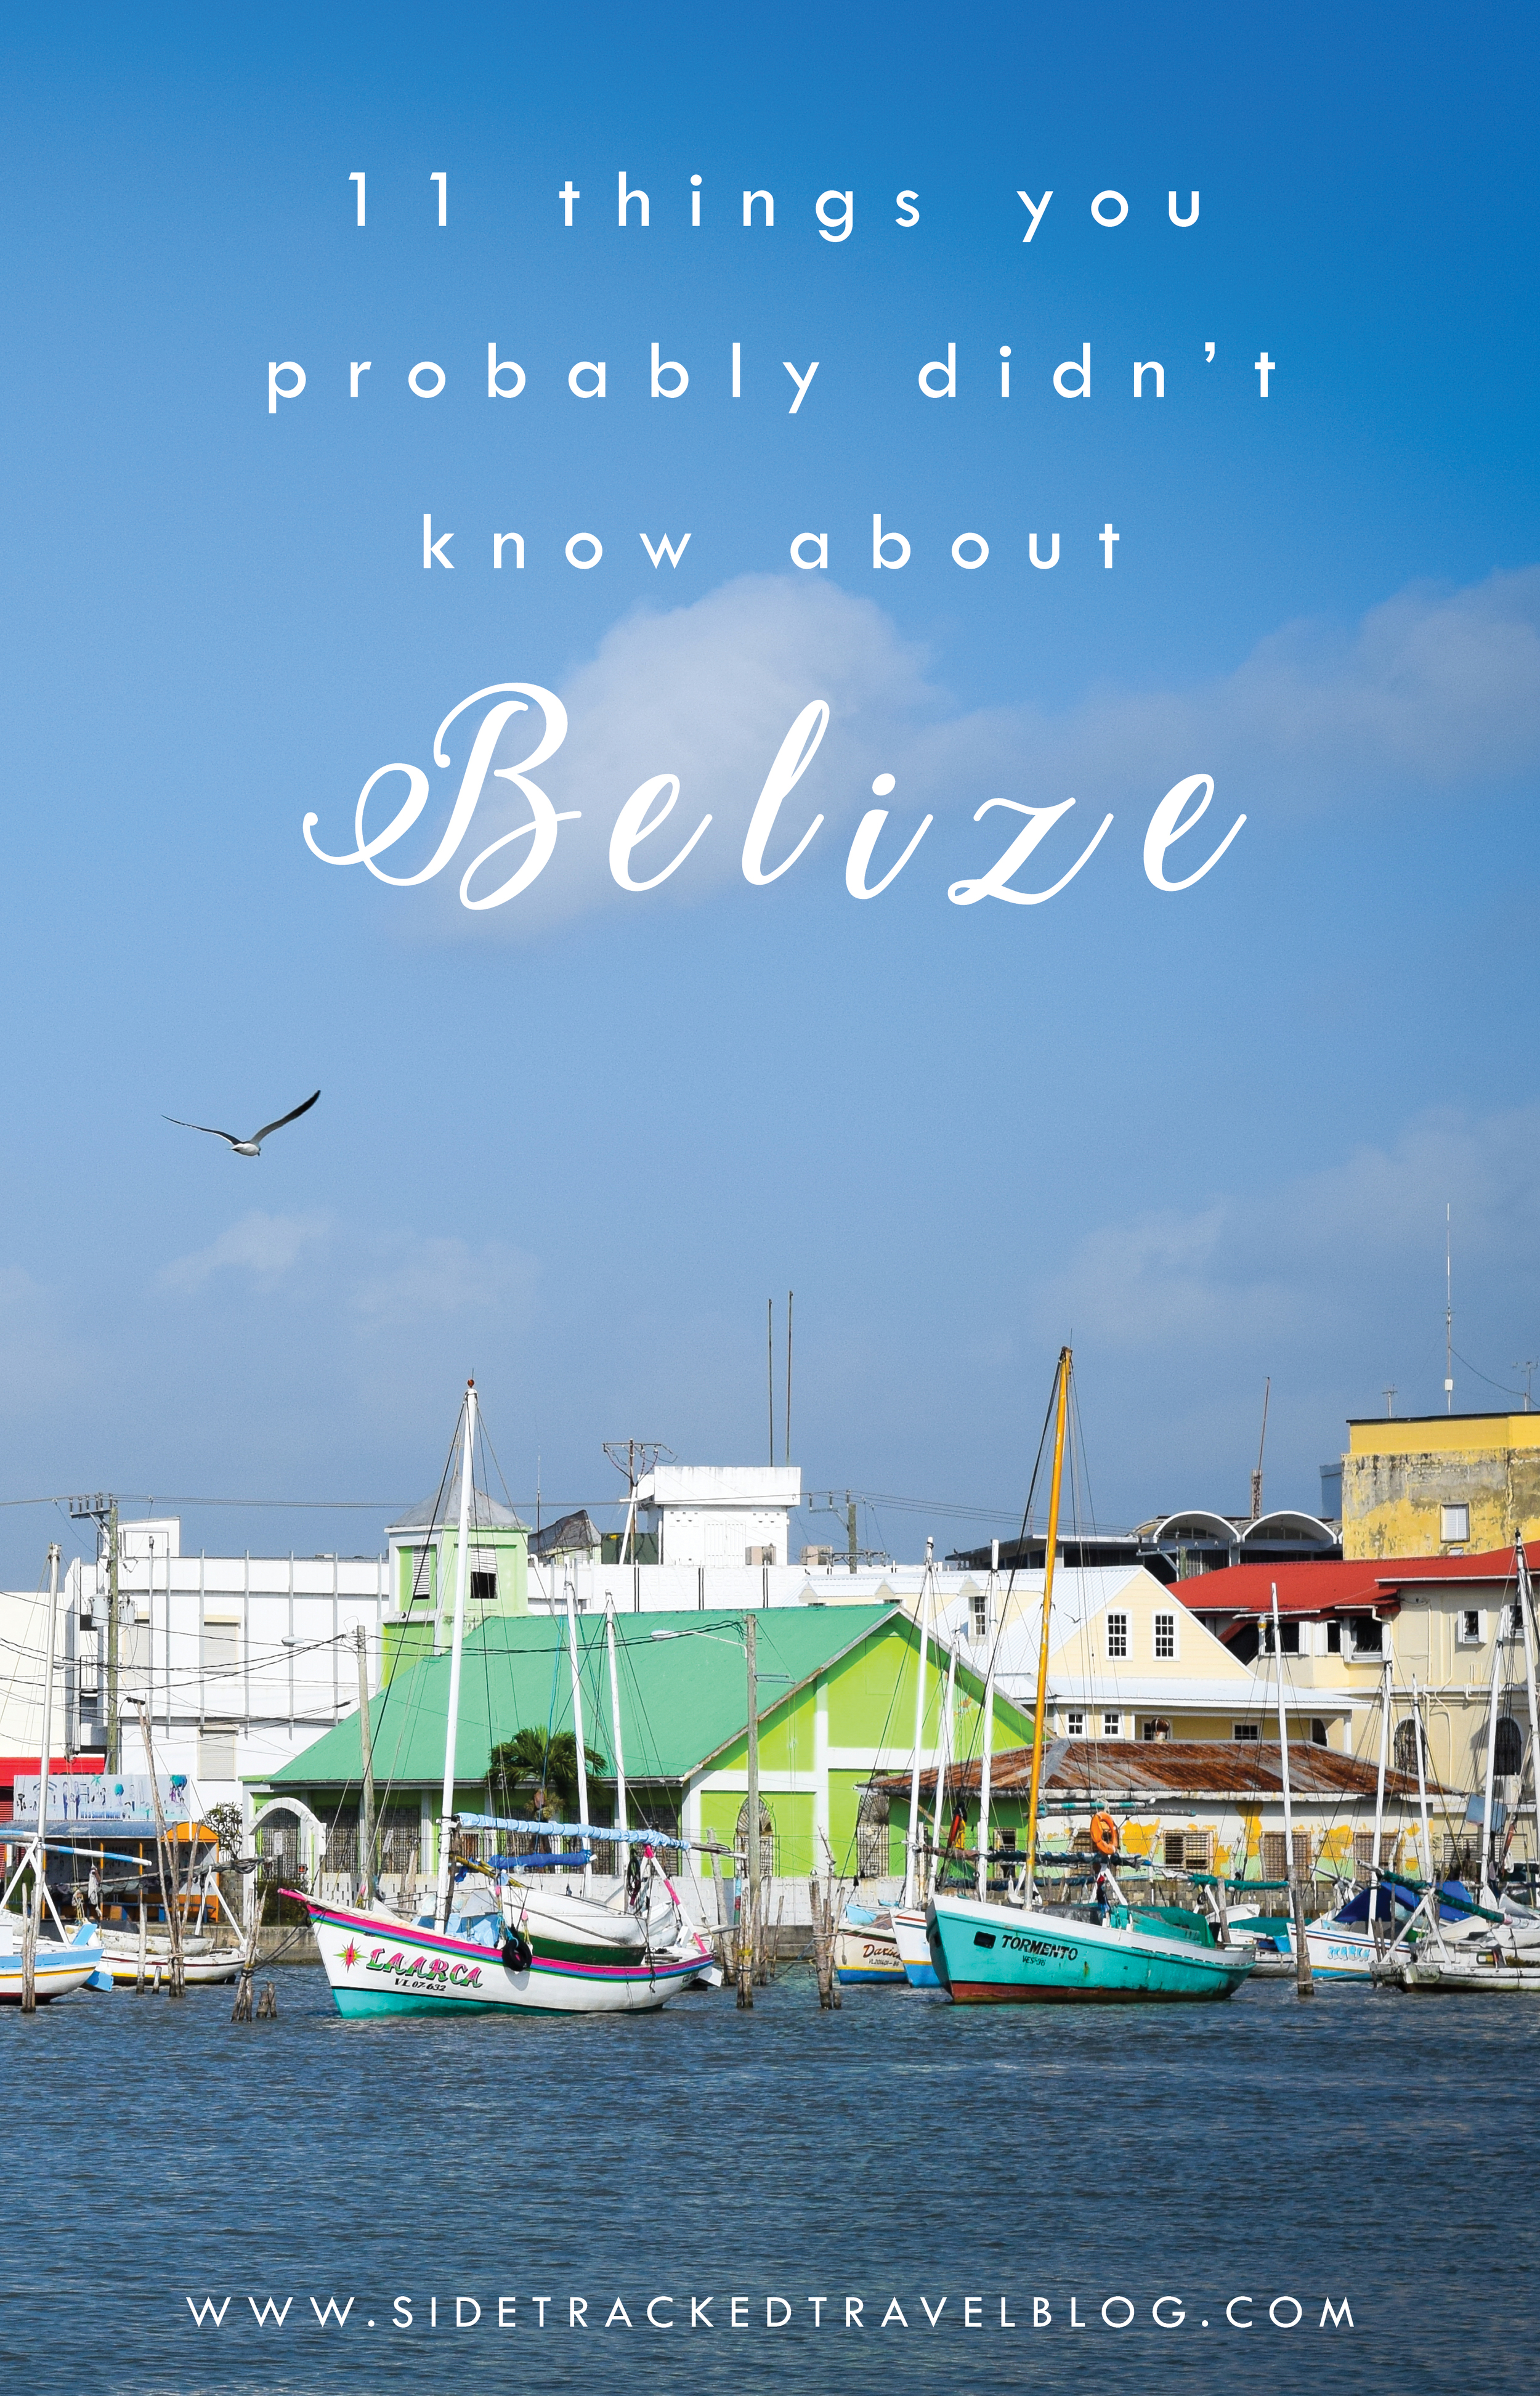 On my recent visit to Belize, I quickly realized that I knew next to nothing about this charming and diverse little country. Here are 11 things you probably didn't know about Belize!